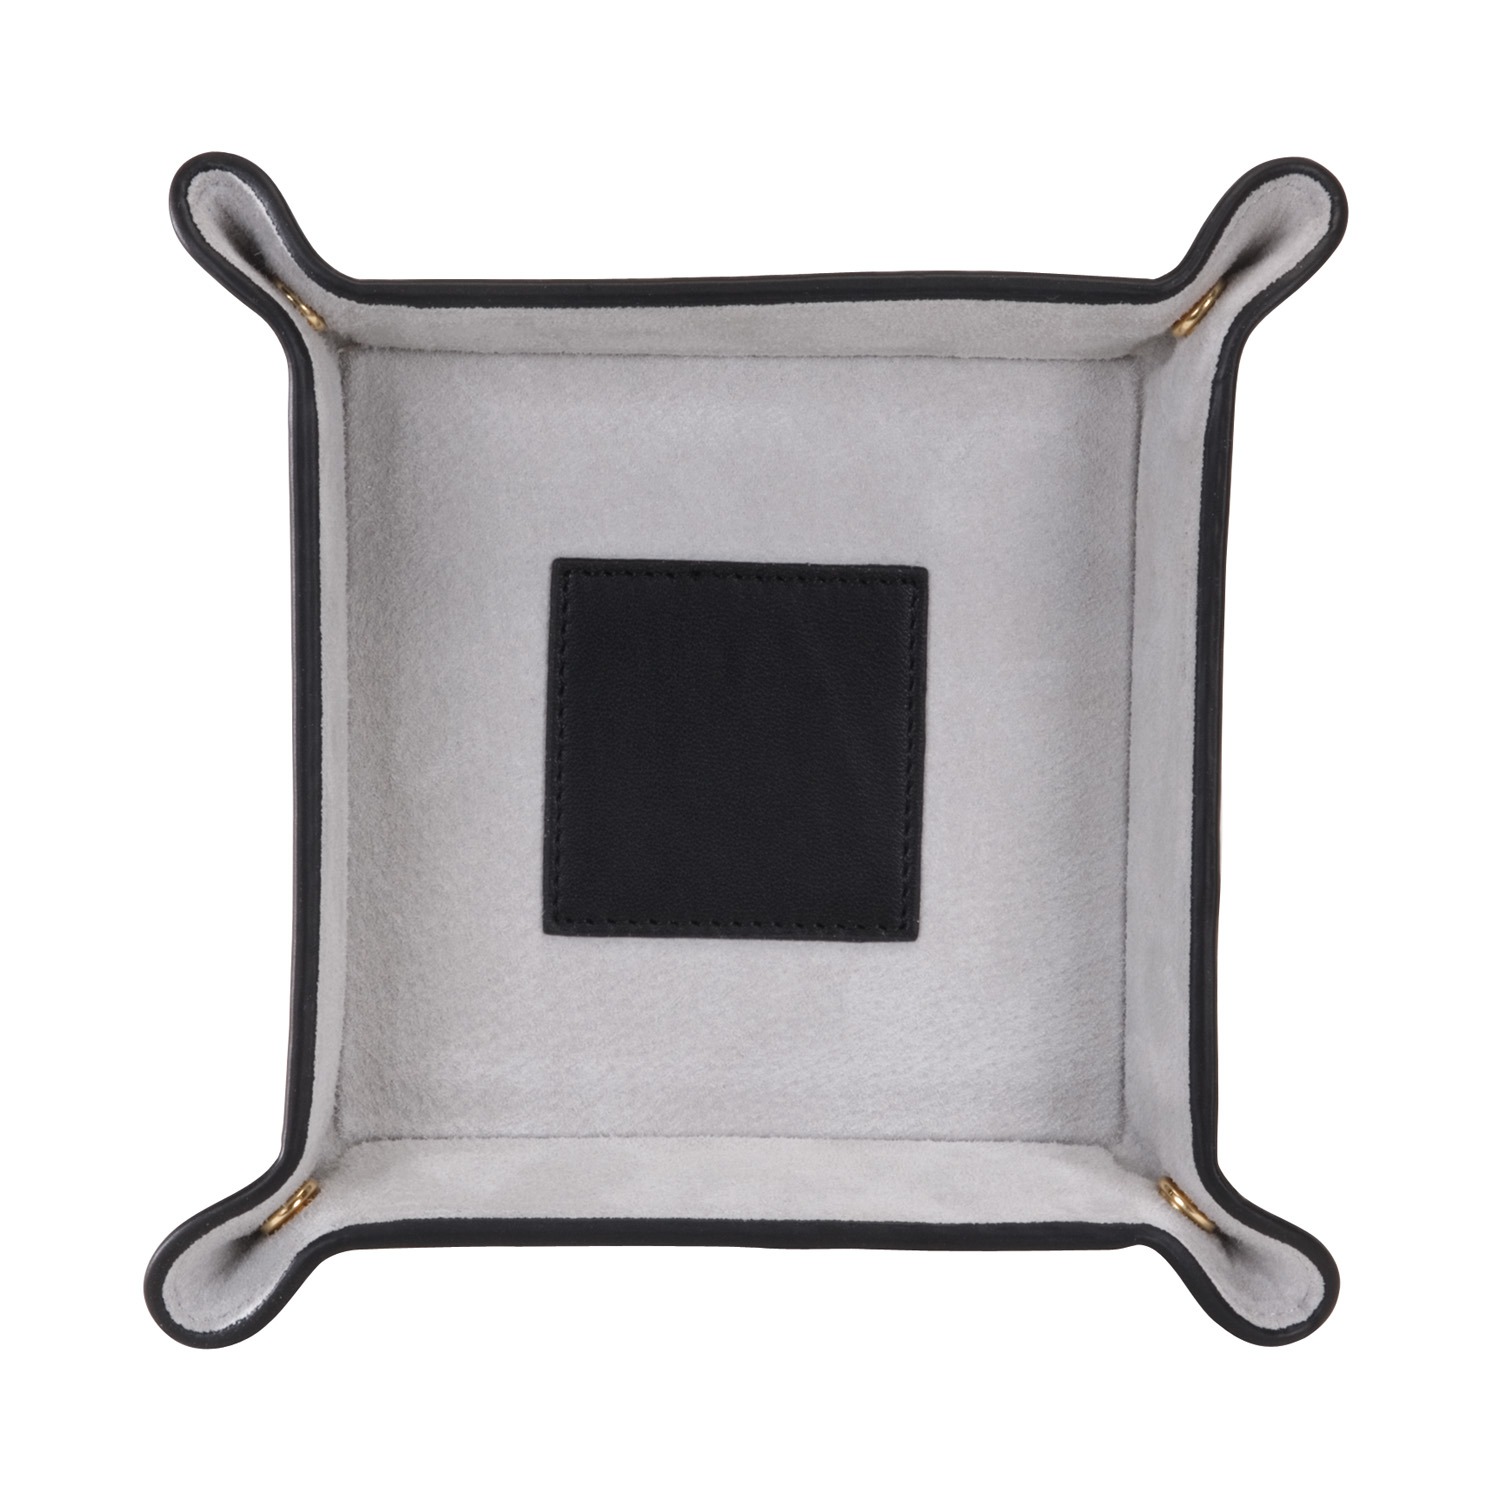 Luxury Suede Lined Catchall Valet Tray in Genuine Leather